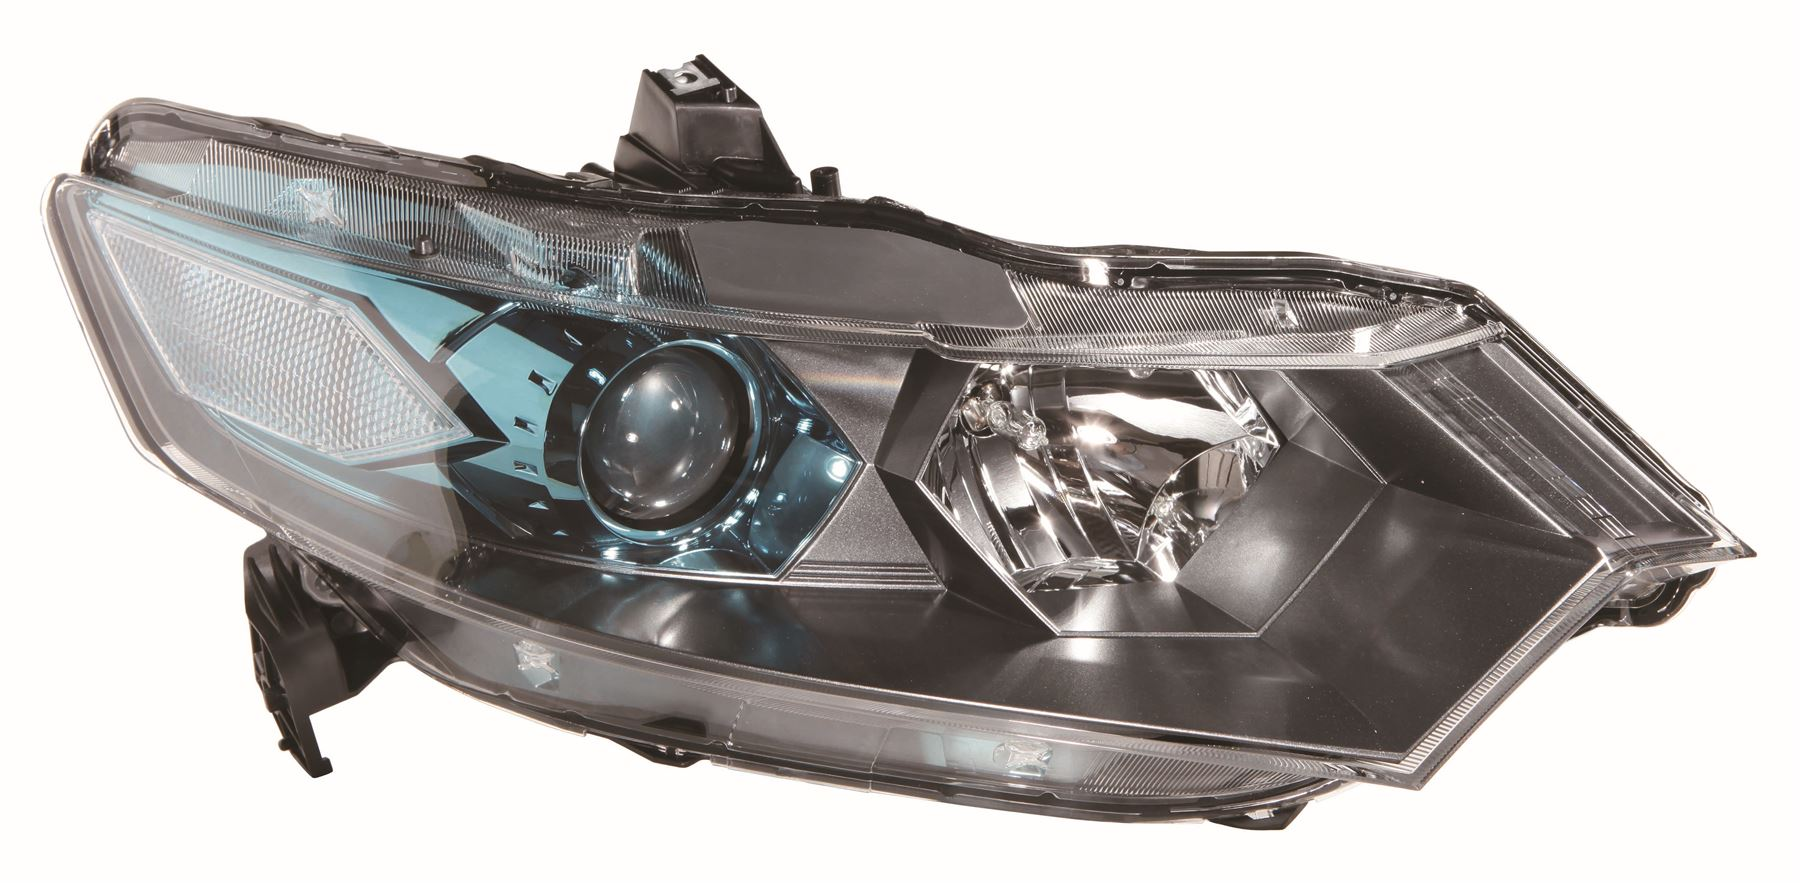 Honda Insight Hatchback 2008-2014 Headlight Headlamp Drivers Side O/S